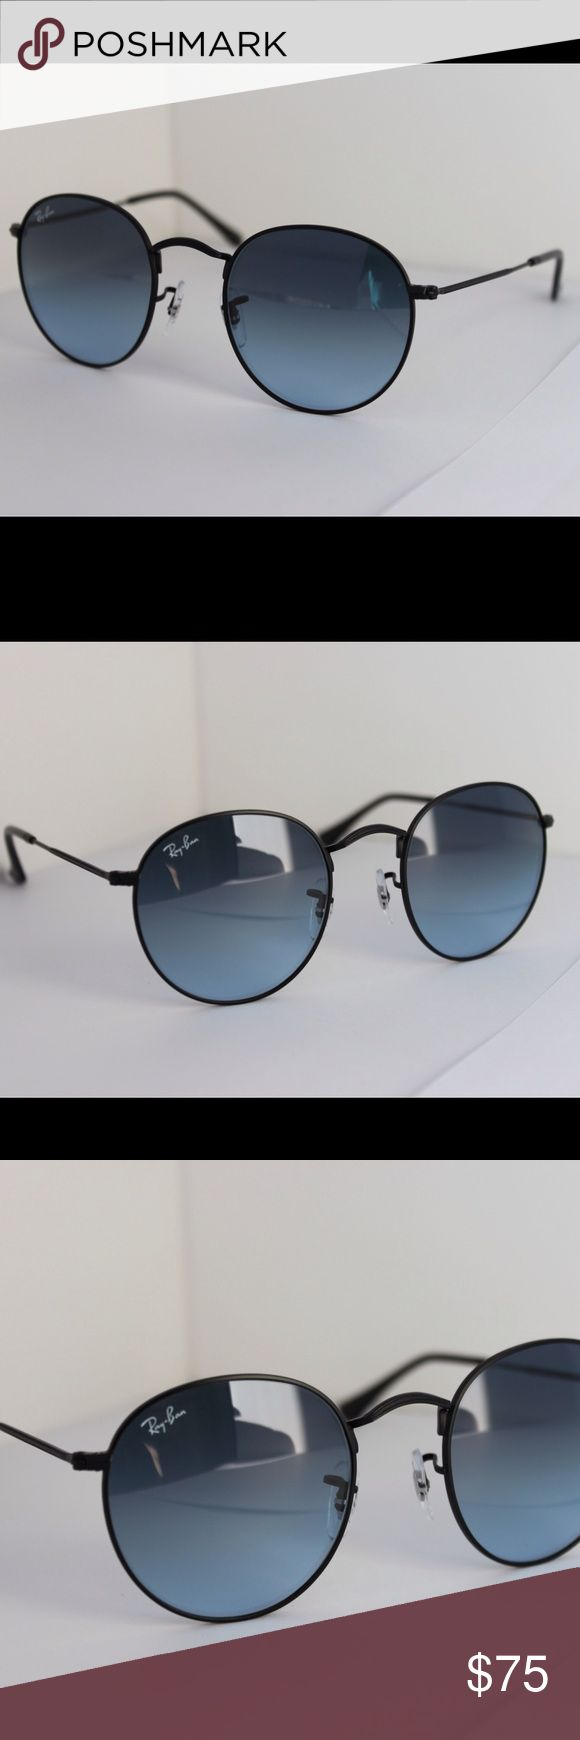 Ray-Ban round sunglasses in black/blue gradient NWT never worn Ray-Ban Round Metal sunglasses John Lennon style RB3447 006/3F 50-21 Black metal frame Light blue gradient lenses 50 mm The Ray-Ban ® Round Metal sunglasses are totally retro. This look has been worn by legendary musicians and inspired by the 1960s counter-culture when this style first originated.The Ray-Ban unisex metal, iconic sunglasses are known for their defined round crystal lenses and distinct shape.  Made in Italy…